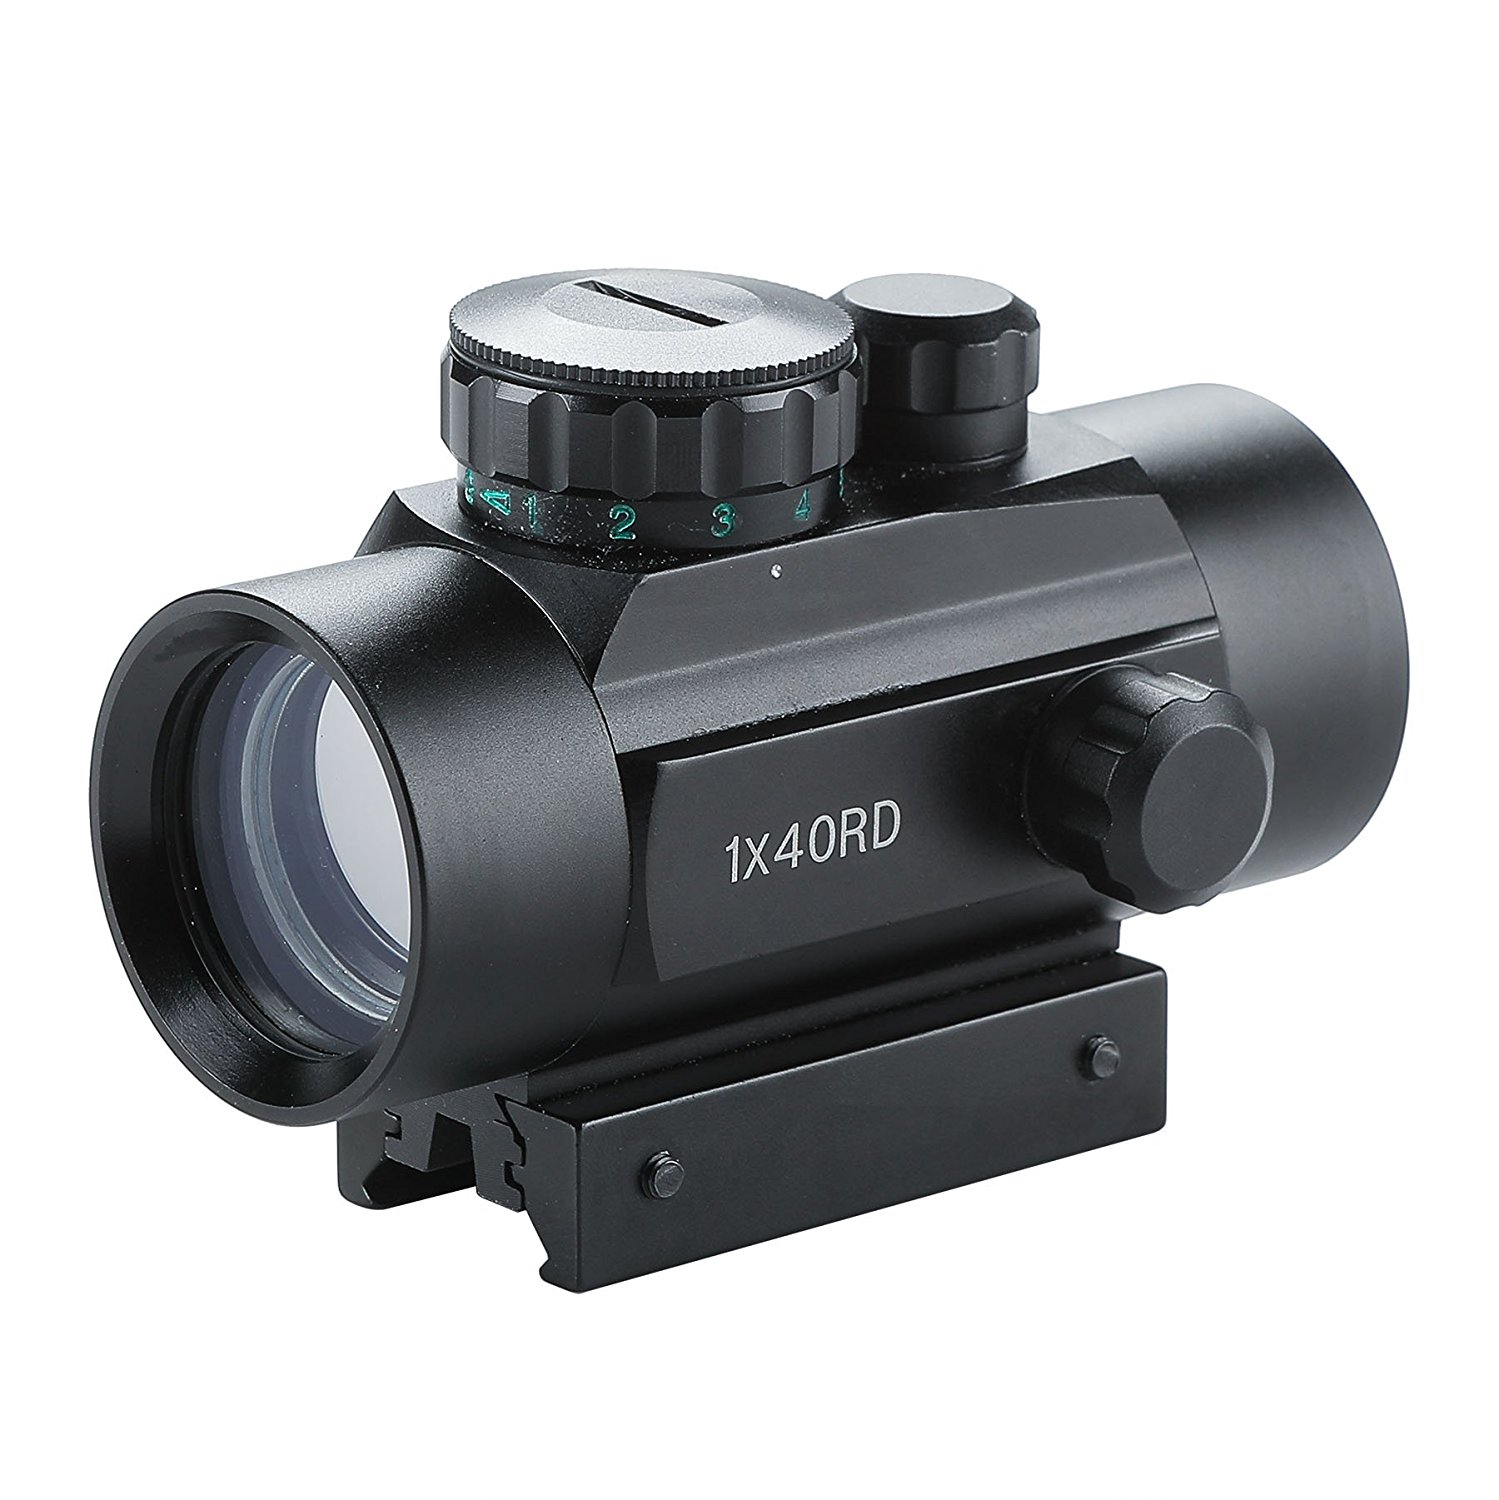 Taktis 1x40mm Reflex Red / Green Dot Sight Riflescope dengan Gratis - Berburu